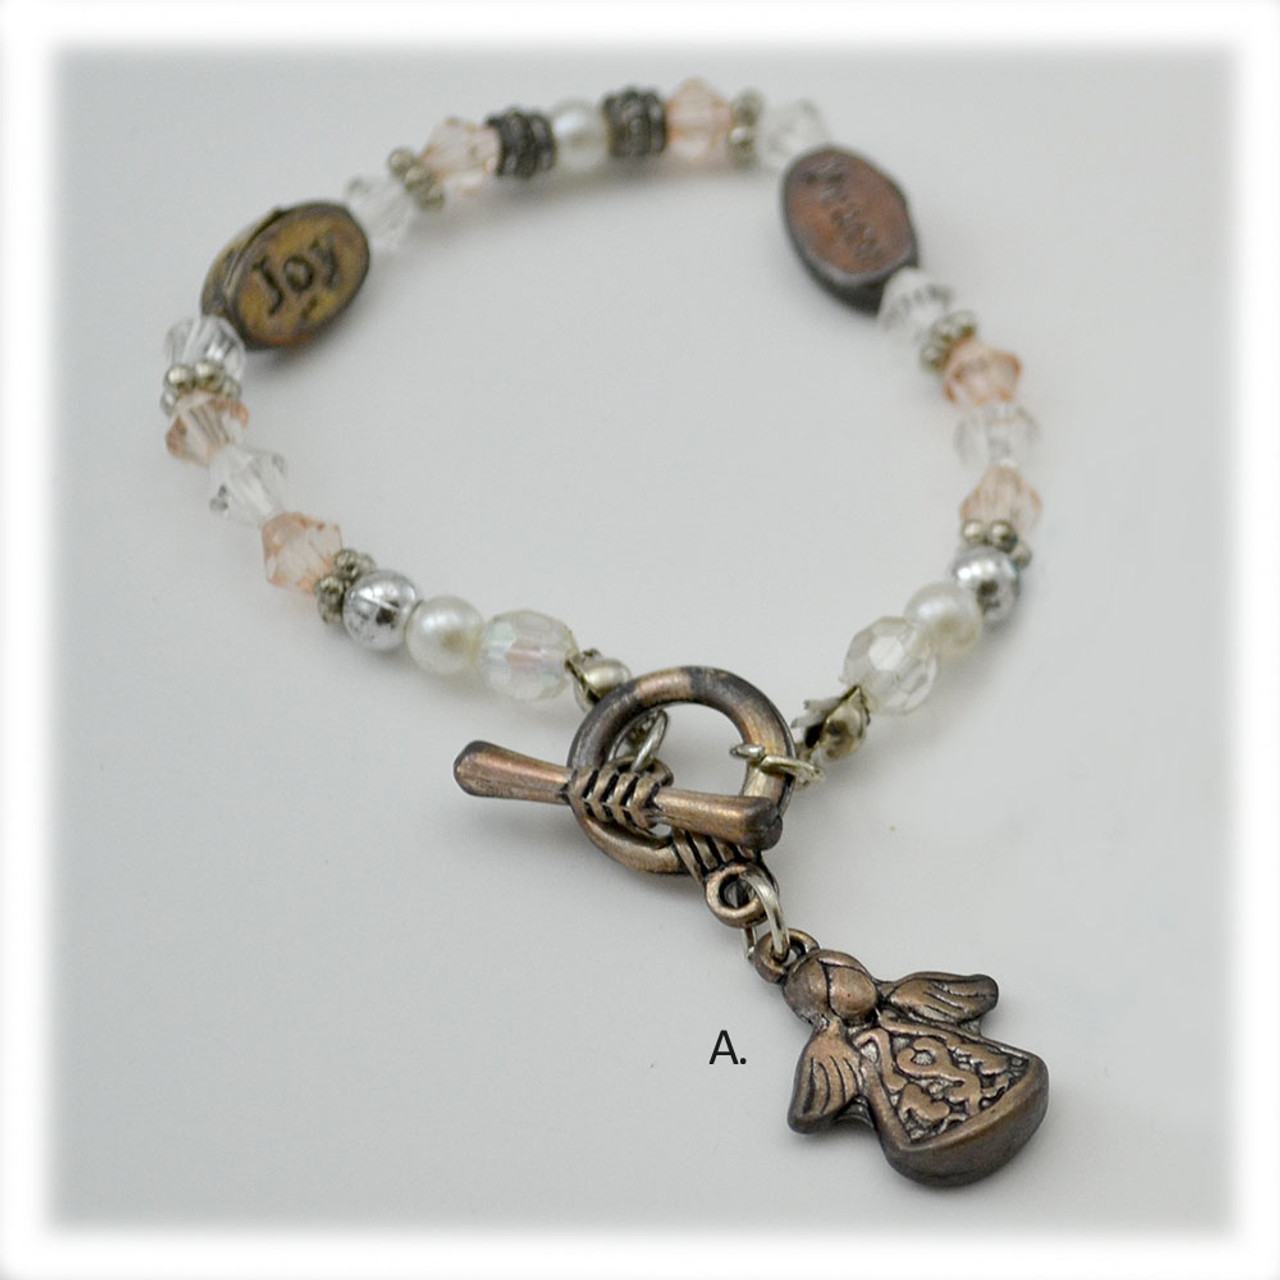 Angel Blessings Bracelets 2 Asst - Sold Separately